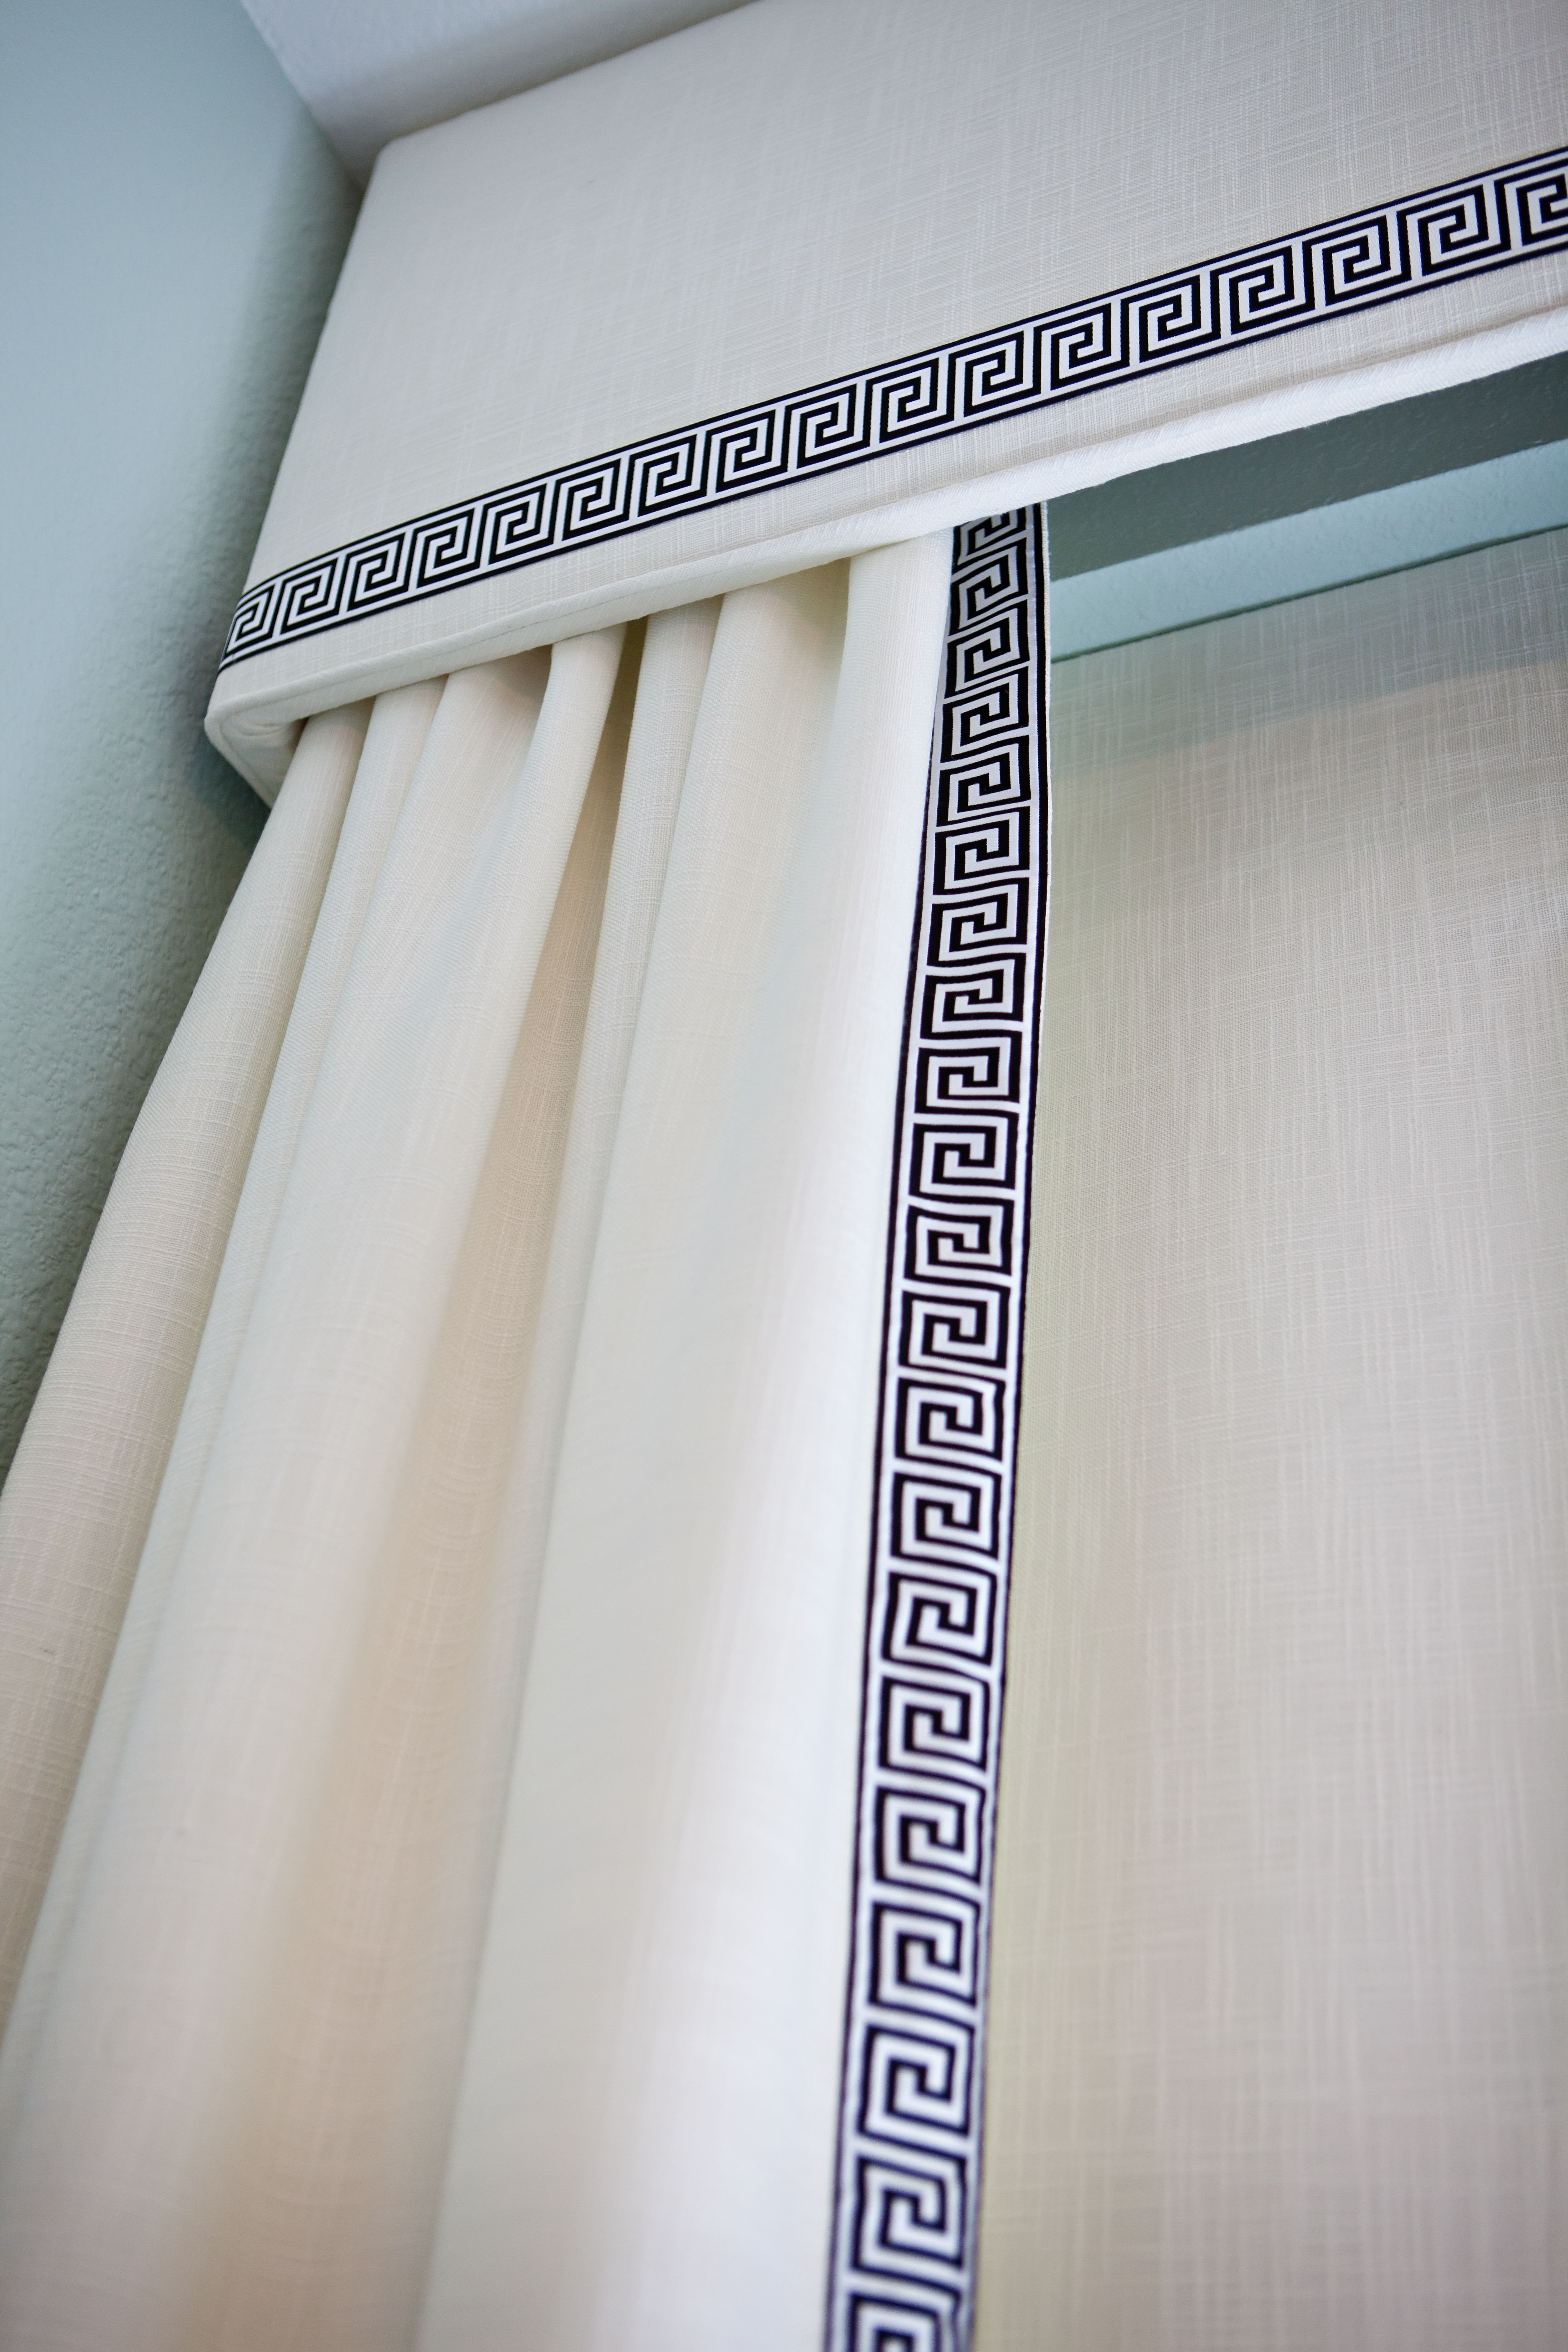 showcase made valance rooms look glass cornices and adjoining treatment these to feel sliding arched for matching over custom kitchen valances in window portfolio with residential compliment of treatments the door